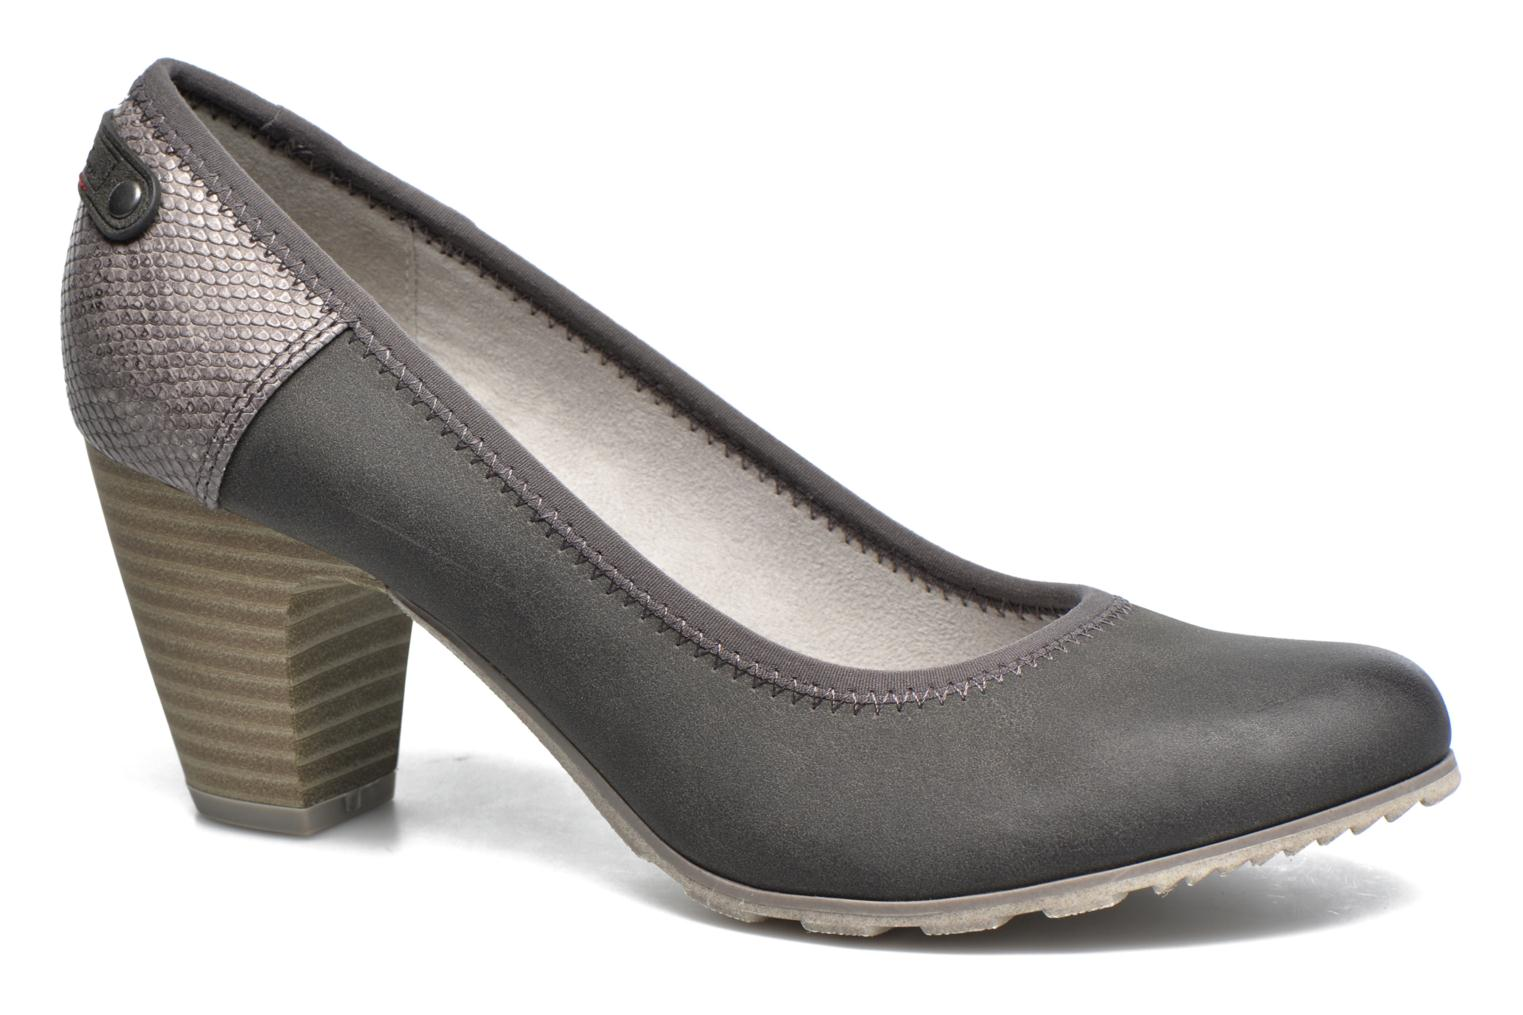 Marques Chaussure femme S.Oliver femme Nyelle 2 Graphite